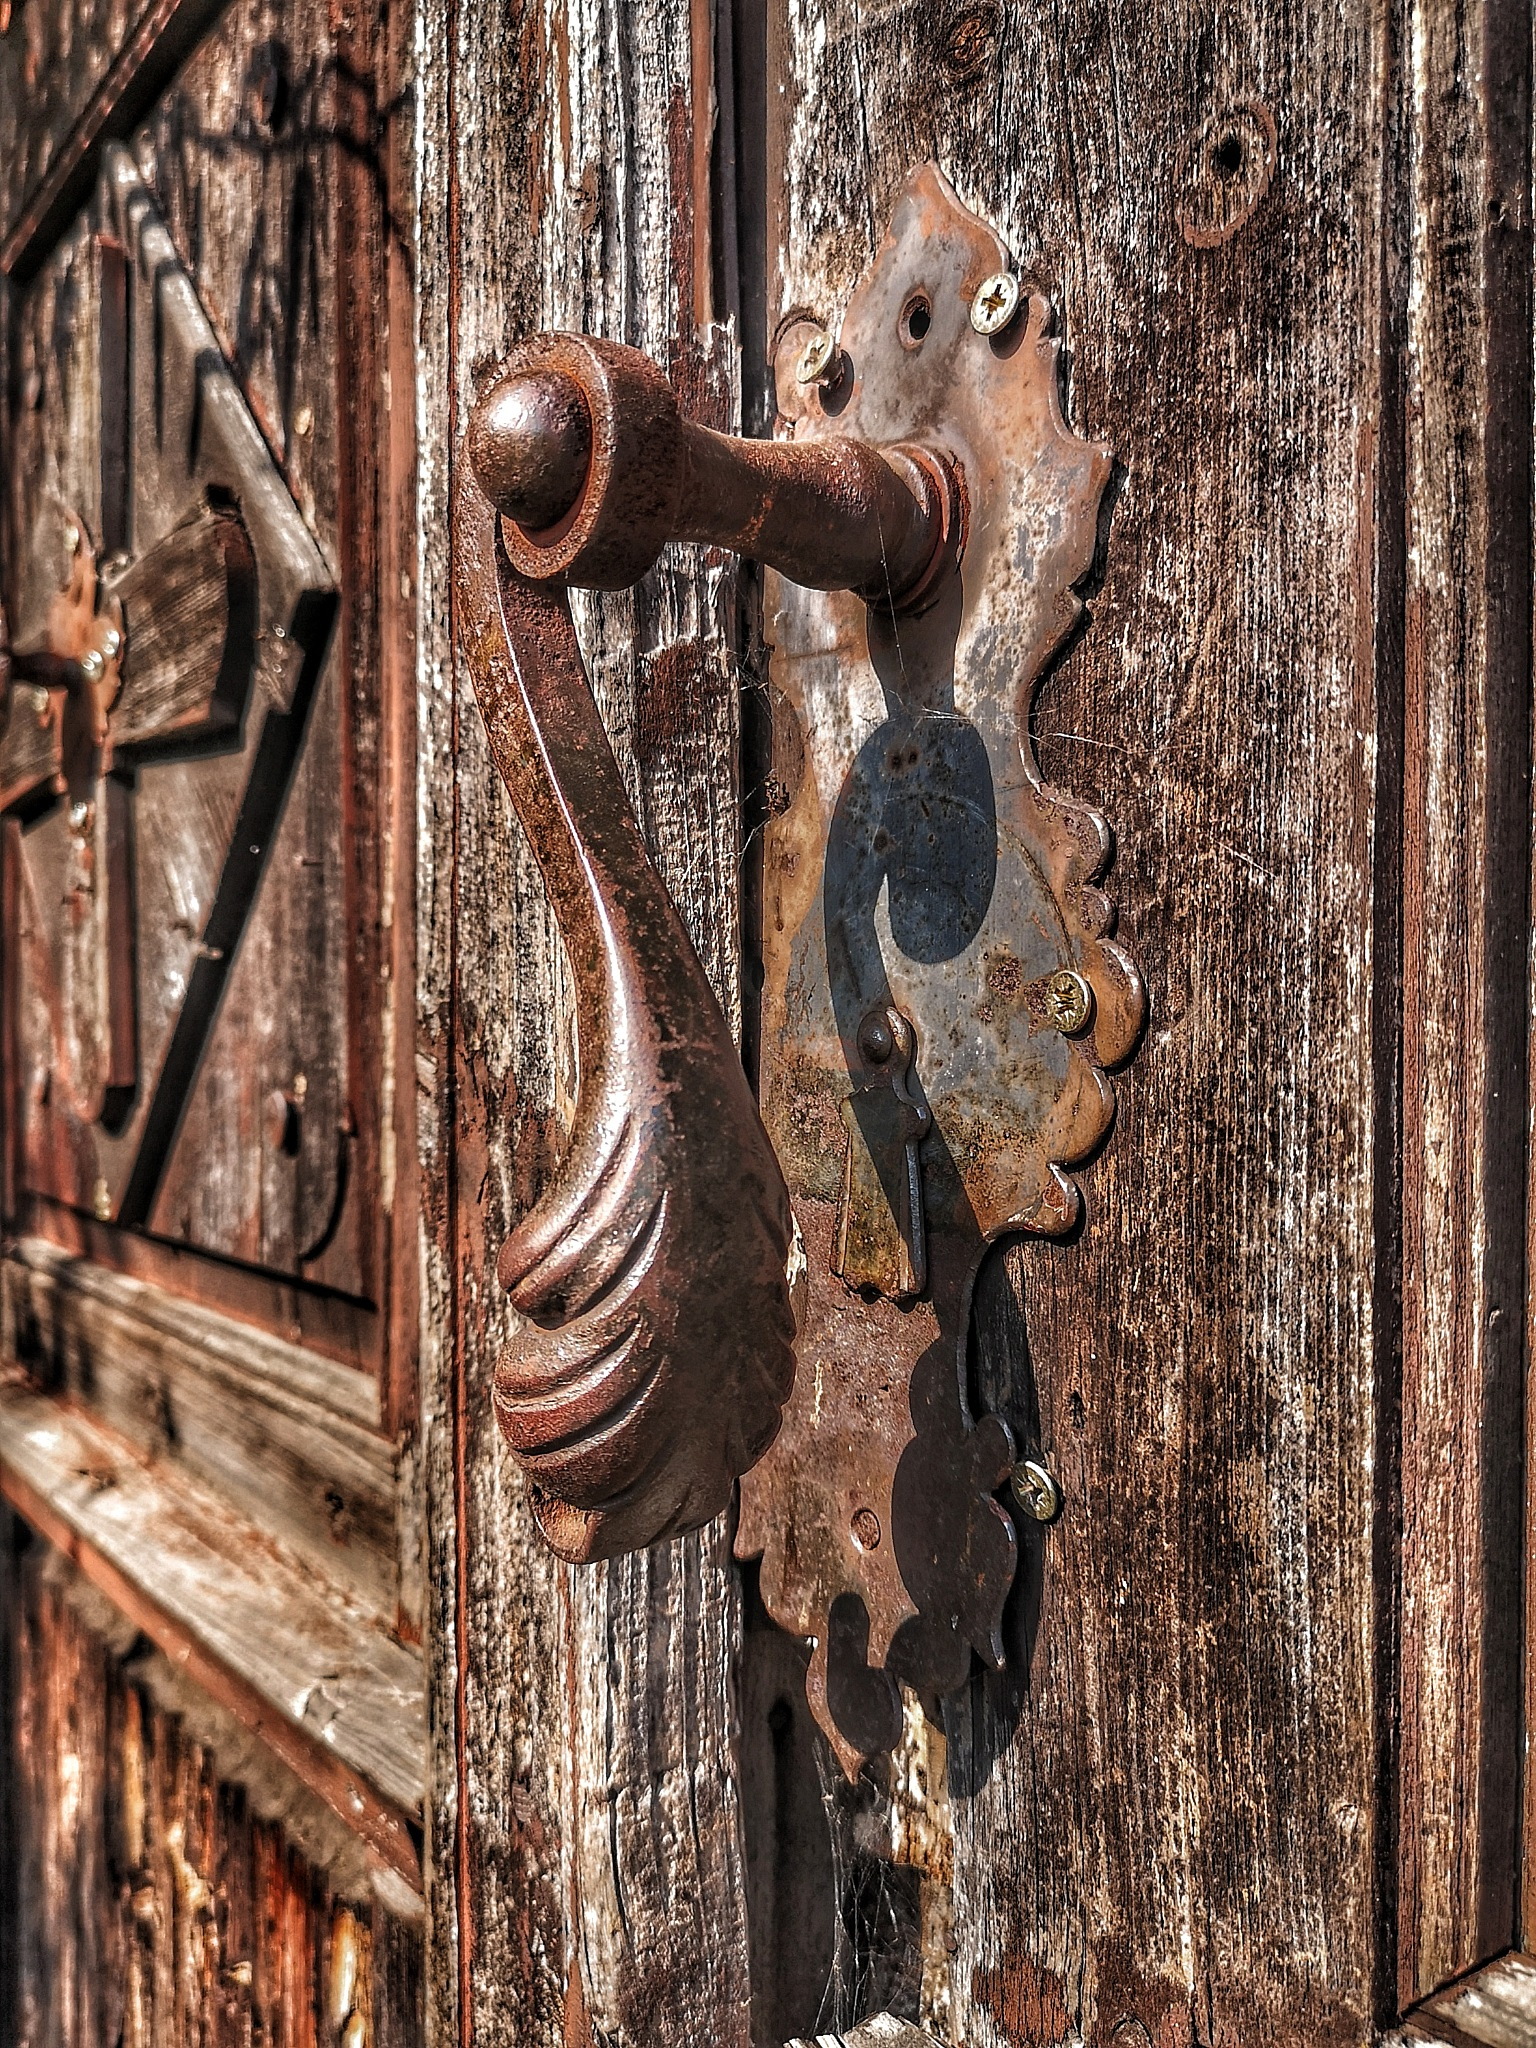 Closed by Katalin Fekete